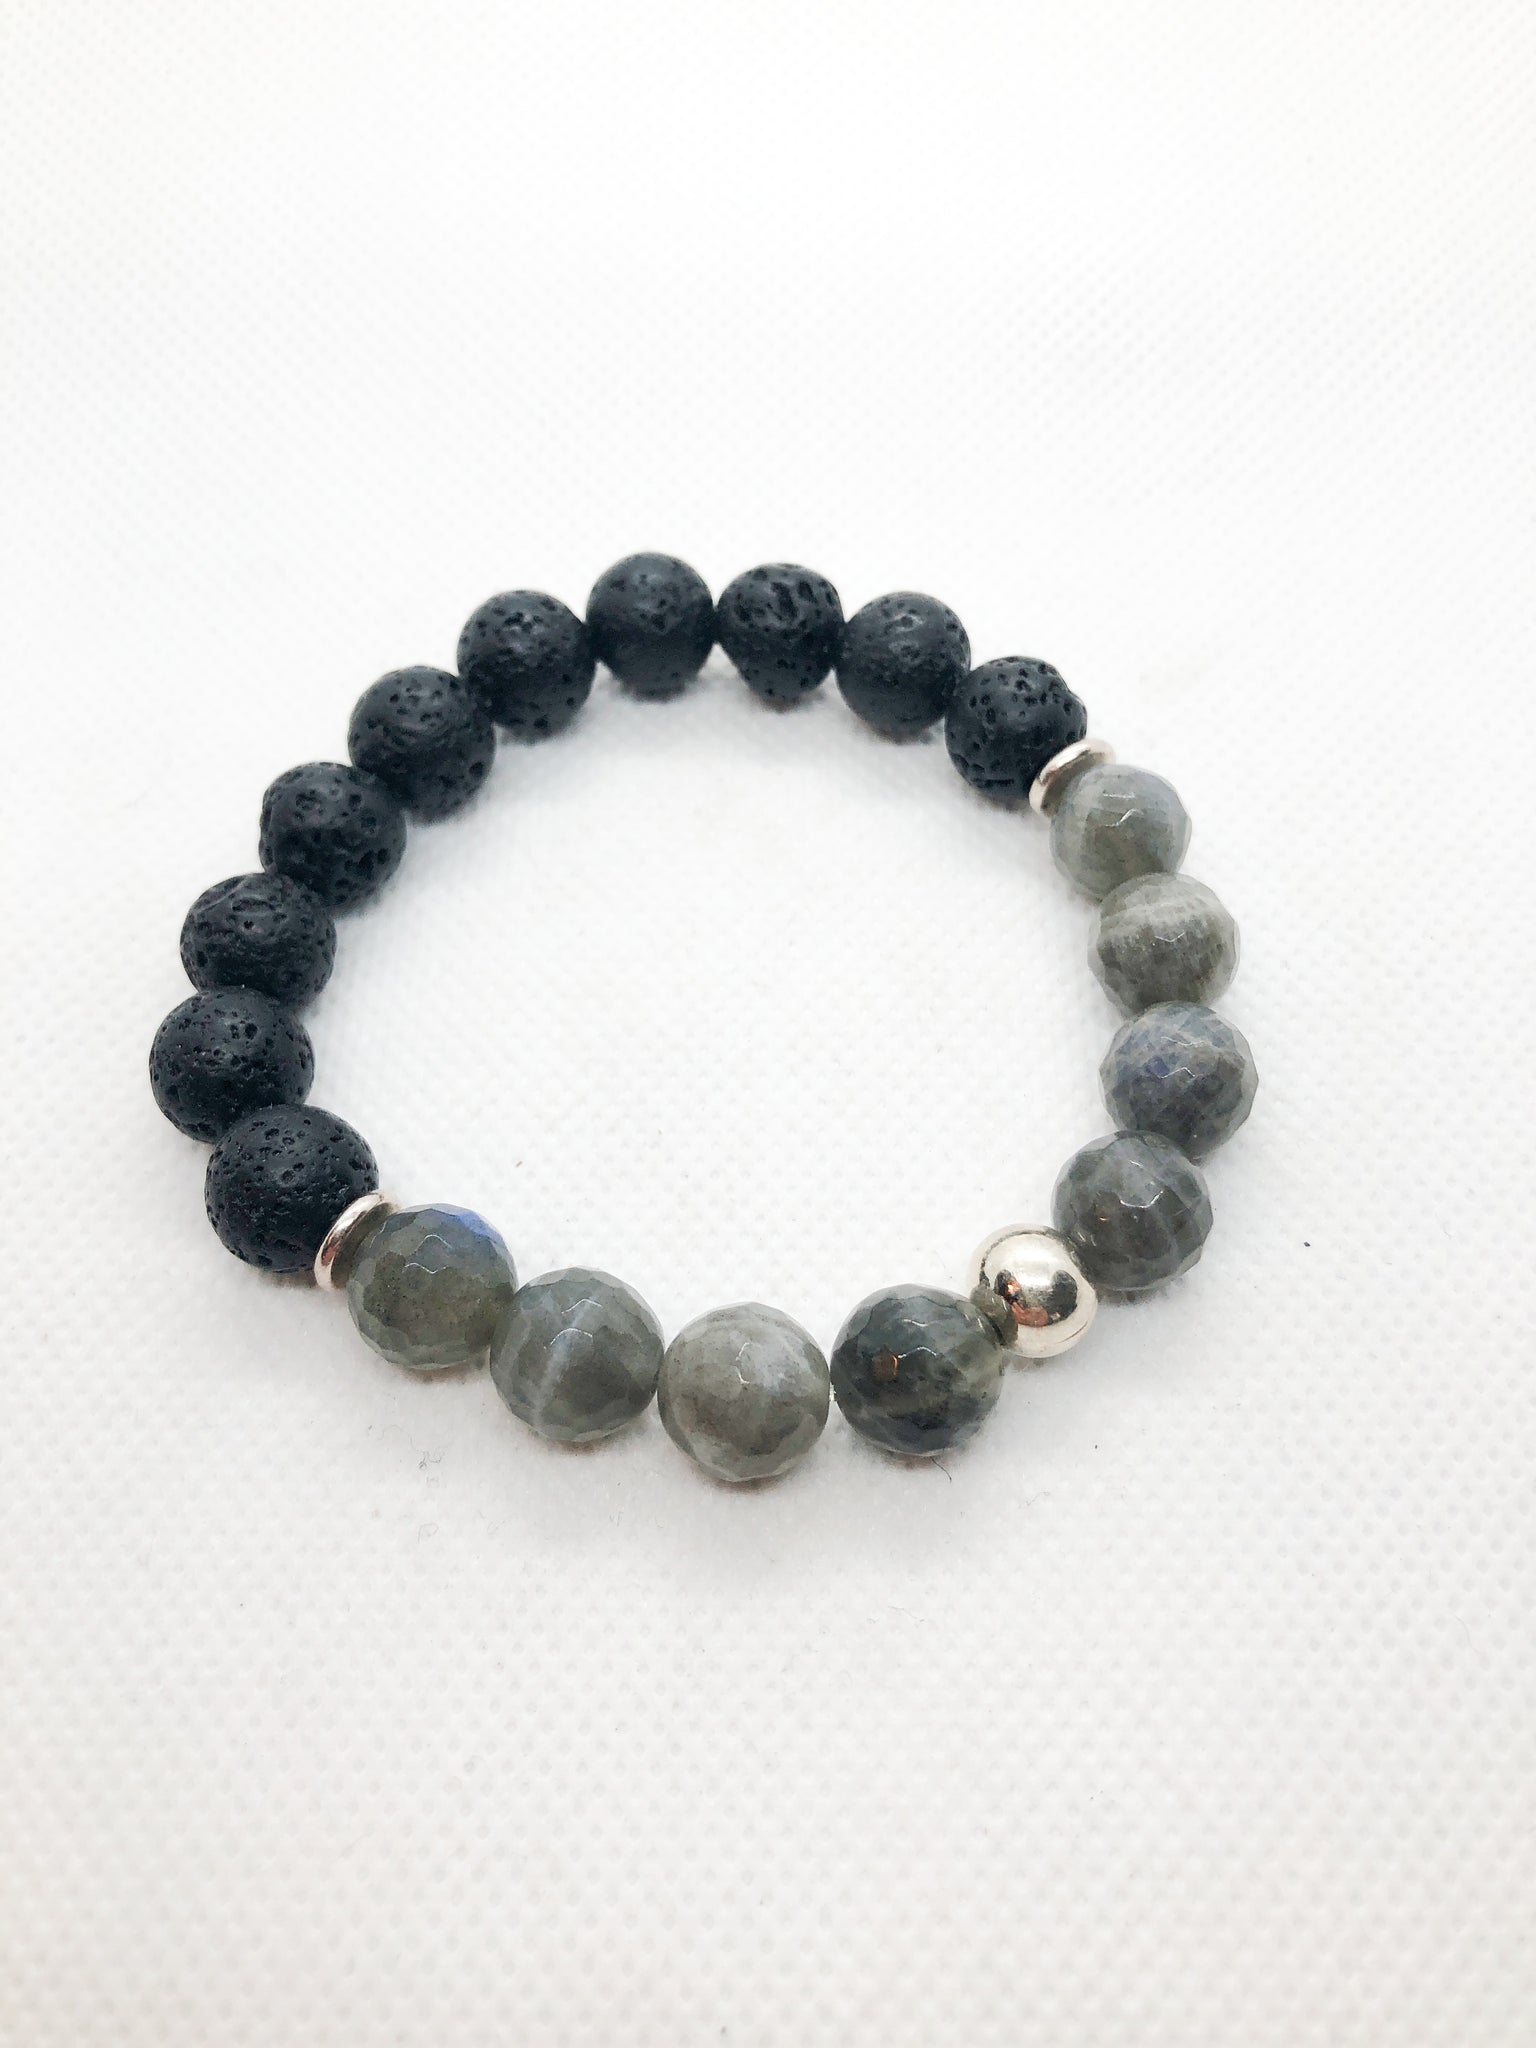 Essential Oil Gemstone Diffuser Bracelets - Blue Flash Labradorite and Lava with Silver Accents